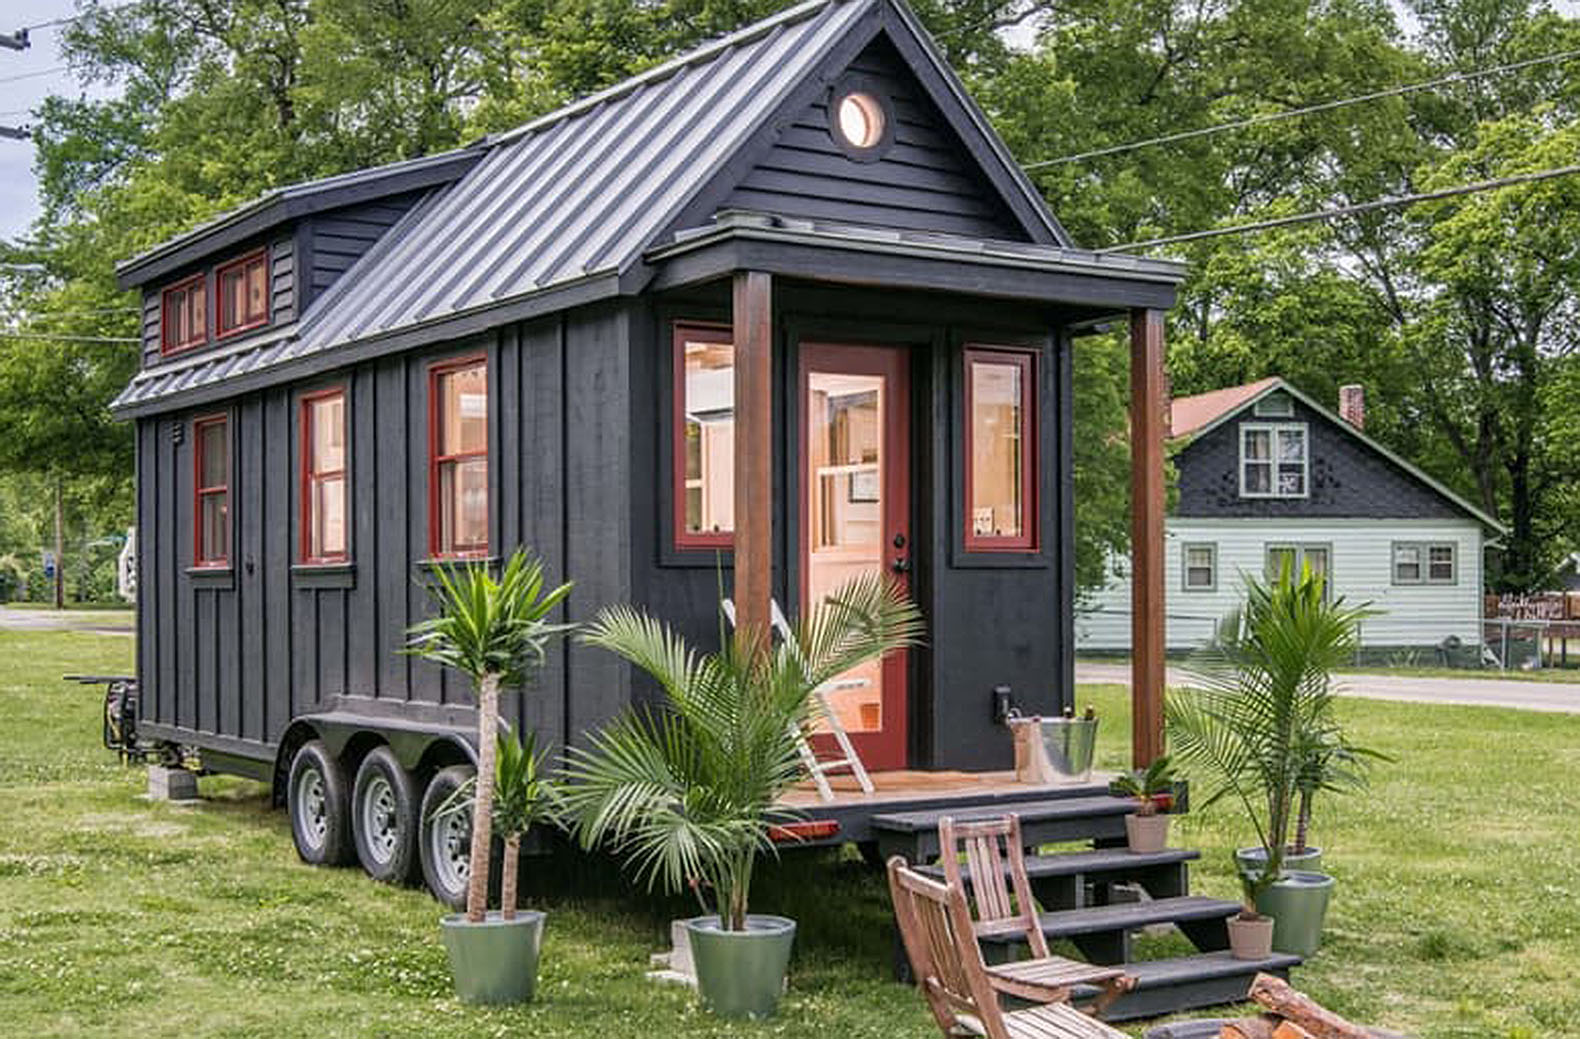 Towable Riverside Tiny House Packs Every Conventional Amenity Into 246 Square Feet